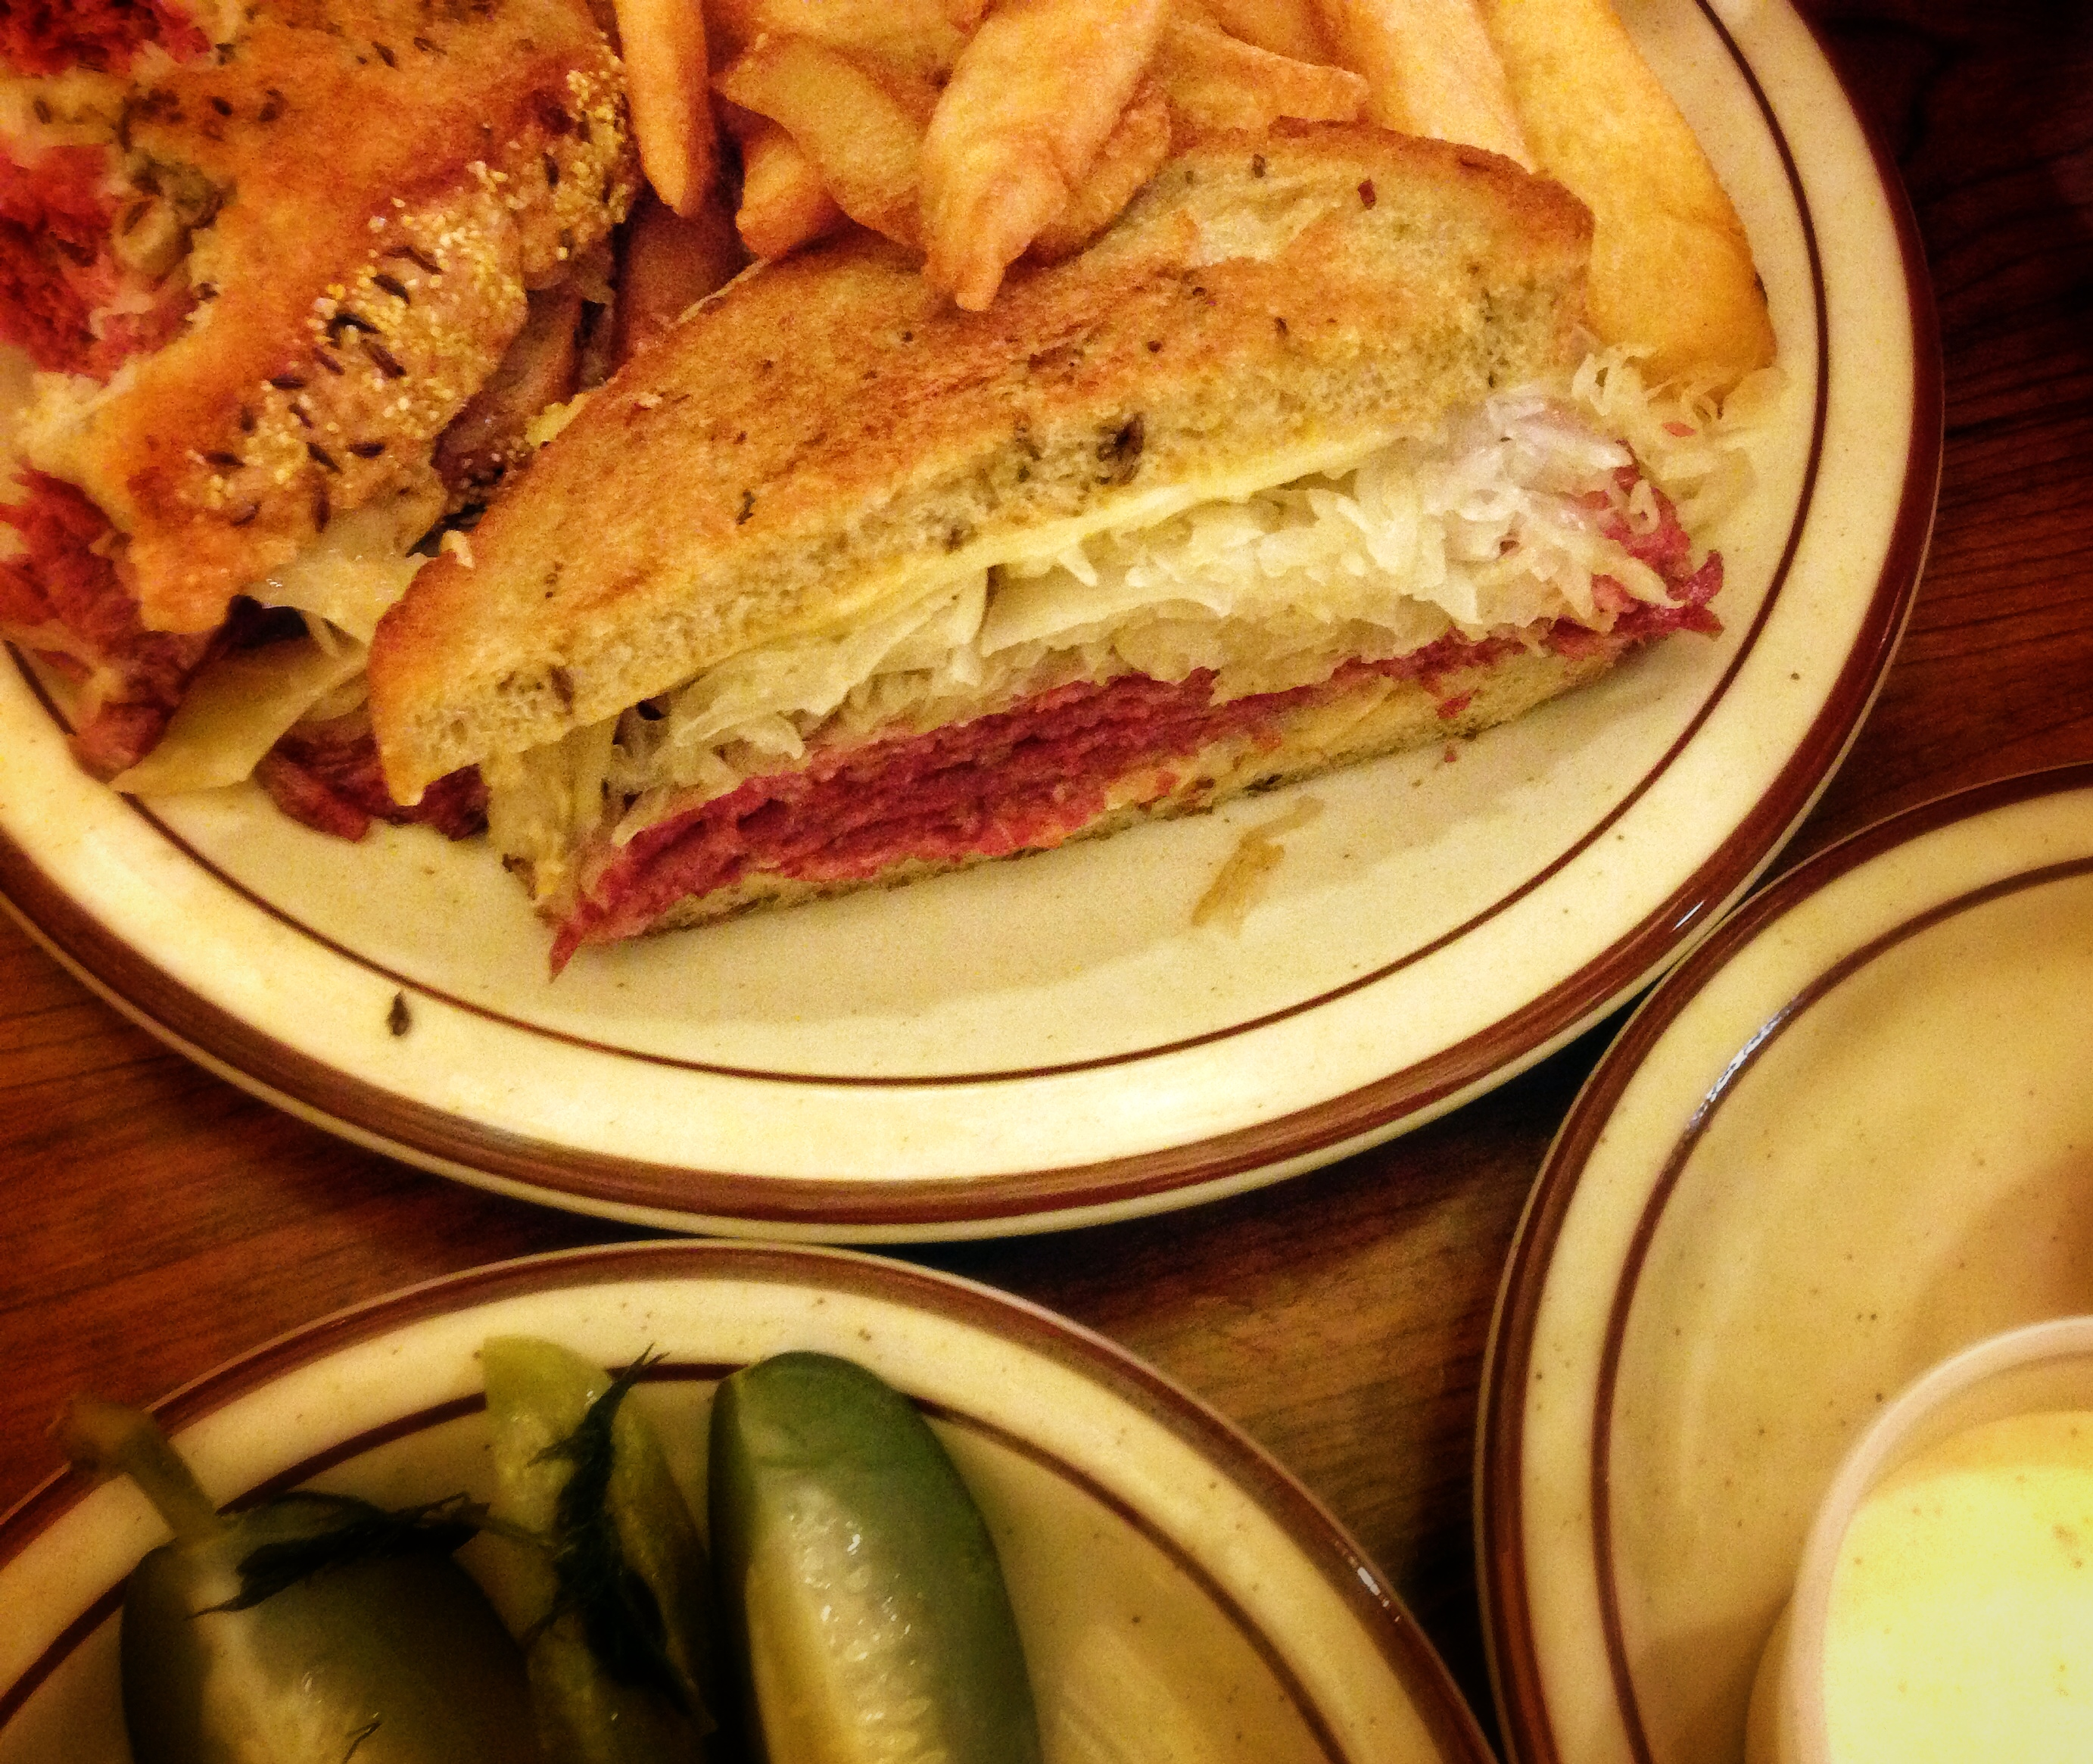 Reuben and fries with pickles, Canter's Deli, Fairfax